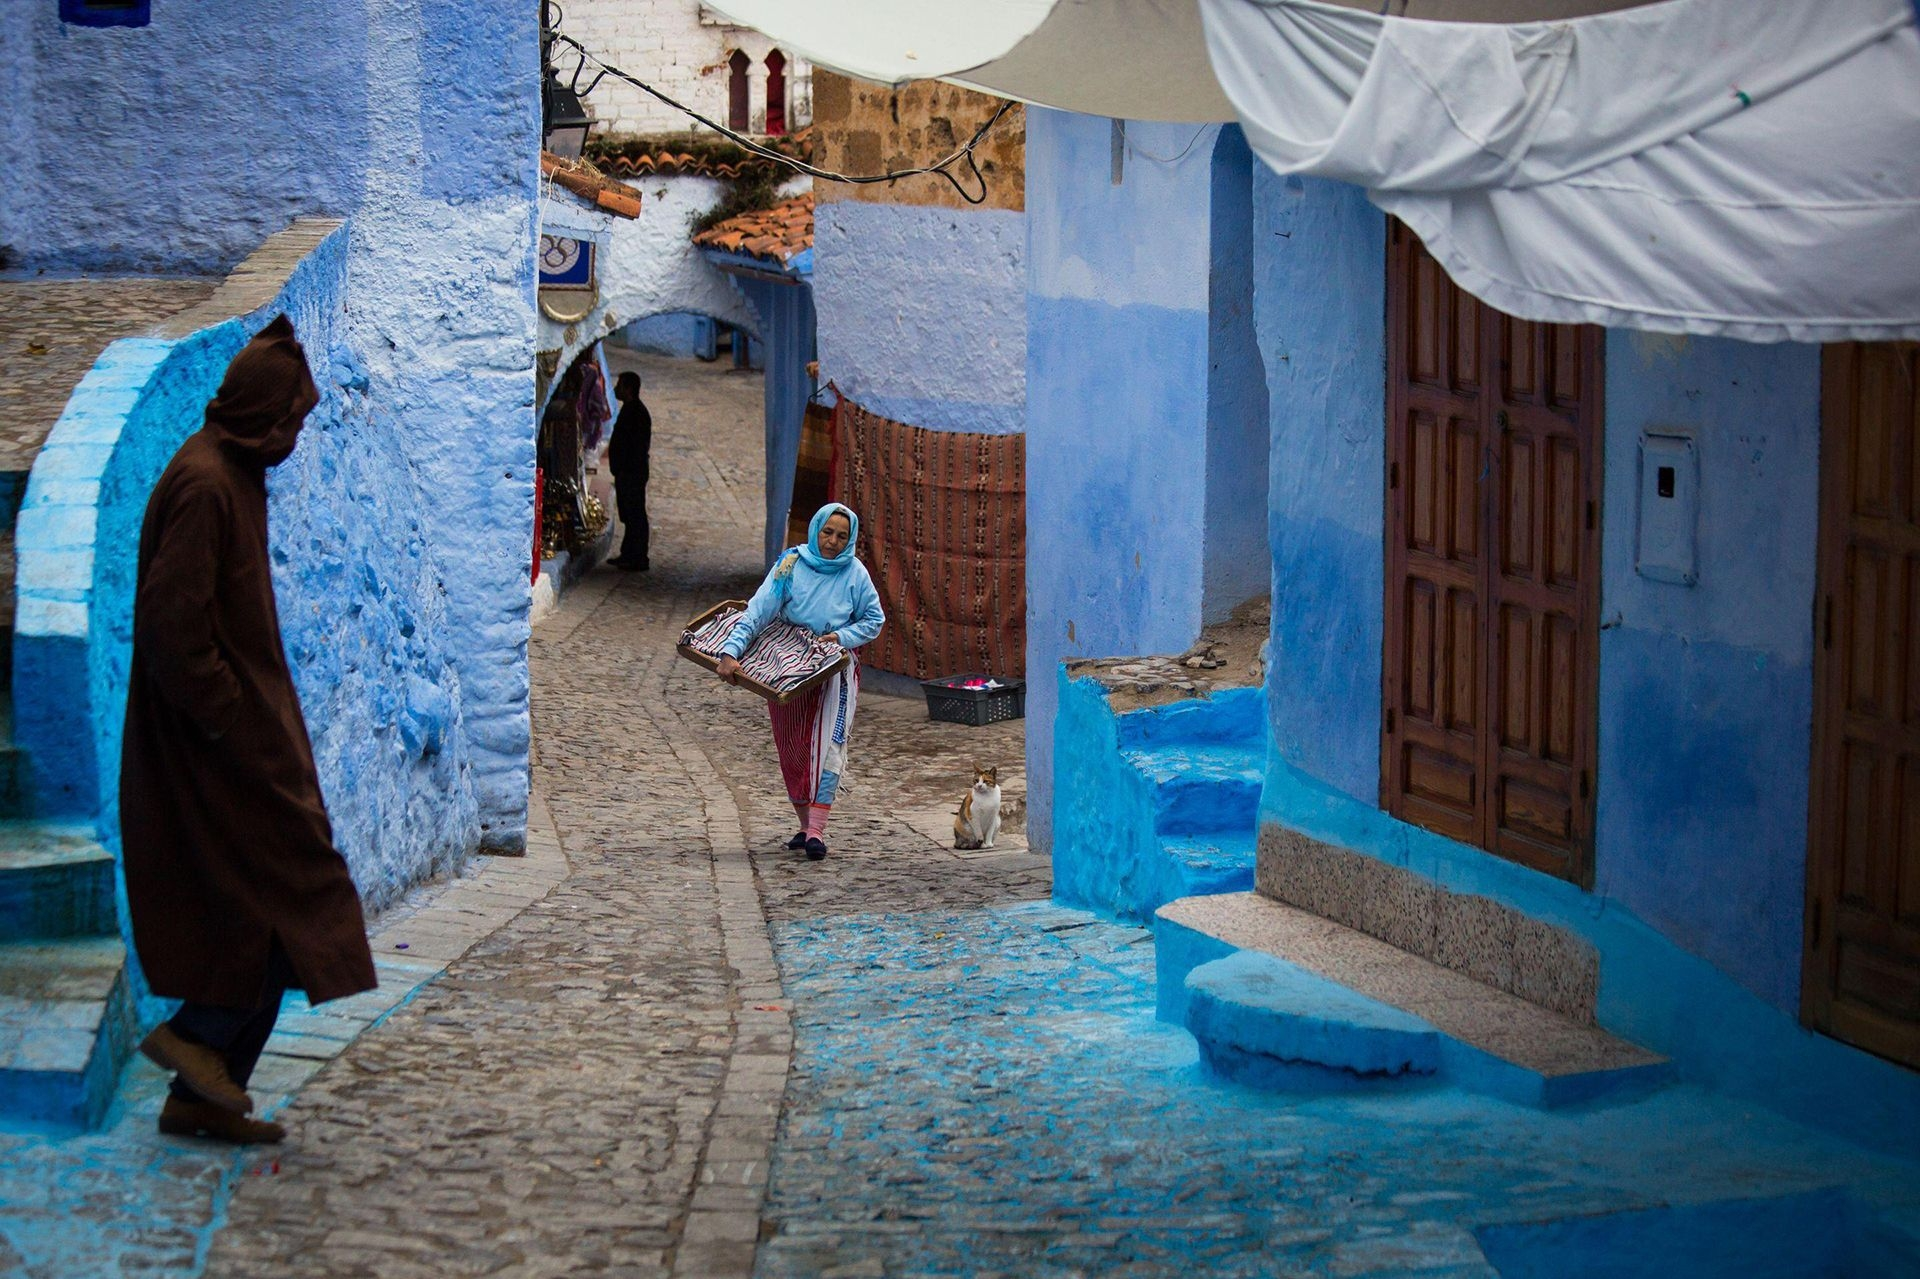 Photograph by Amy Sacka, National Geographic Your Shot